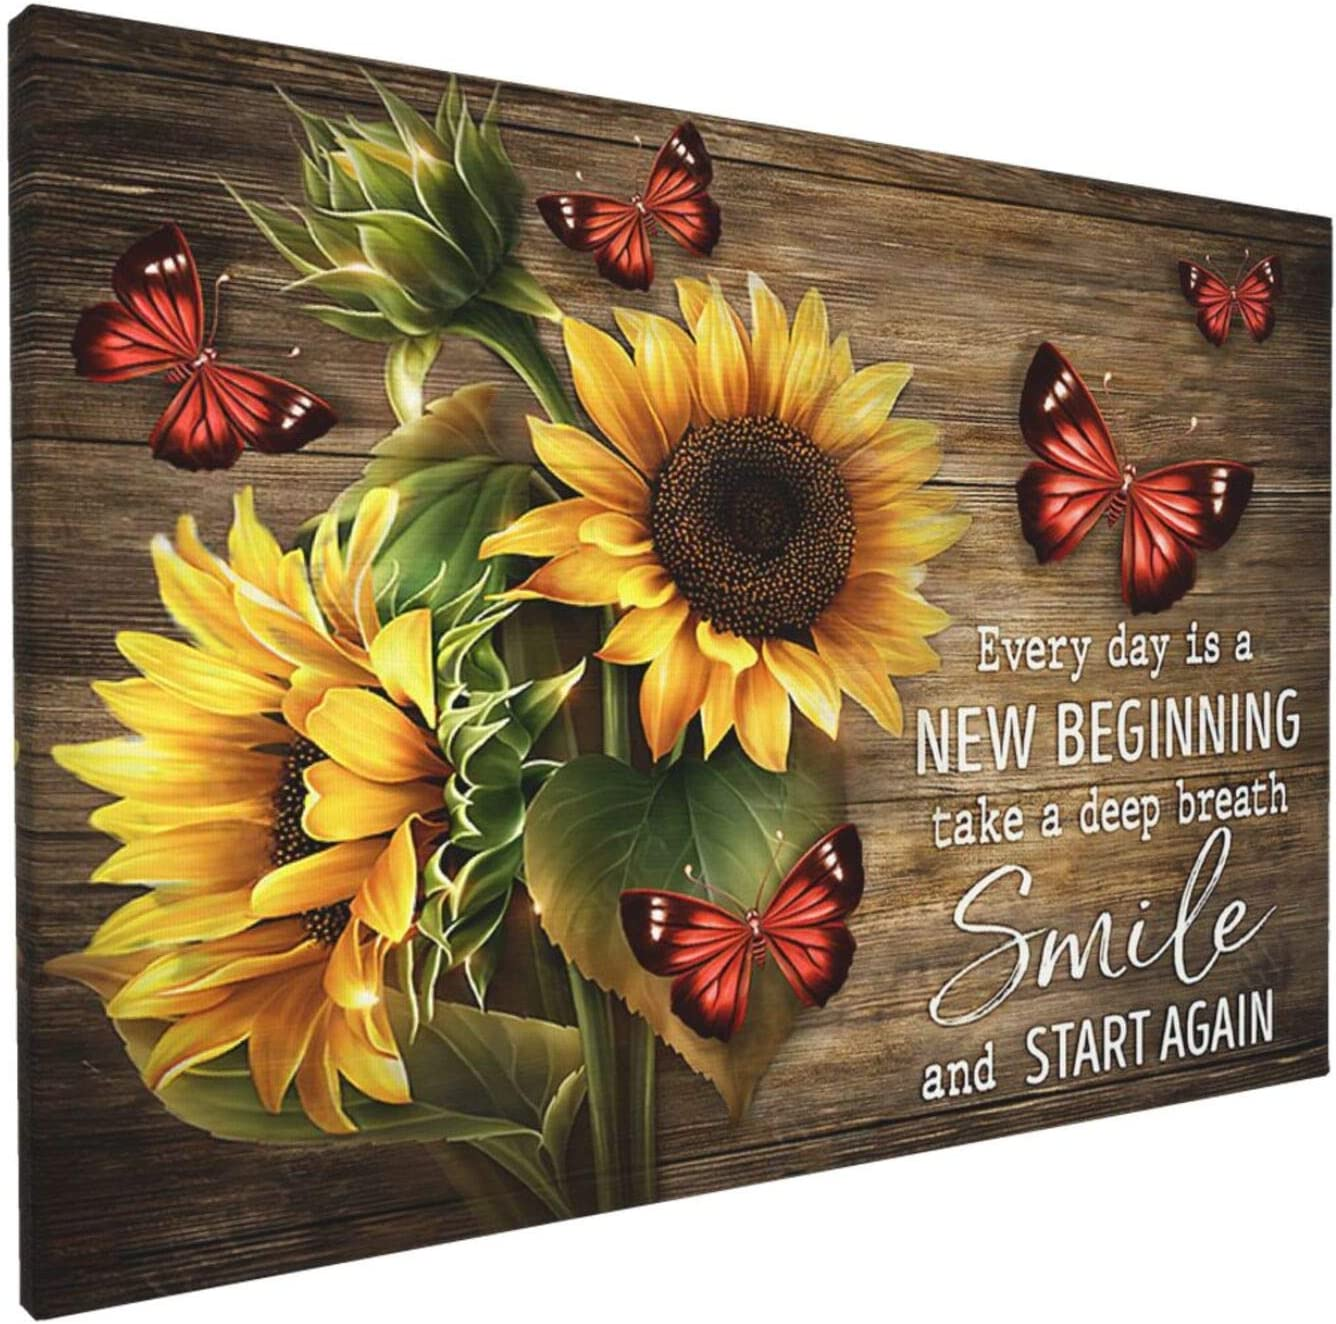 Motivation Quotes Sunflower Wall Art Inspirational Butterflies Paintings Canvas Framed Wall Art For Living Room Ready To Hang Home Decor Bedroom Bathroom Office 12x18 Inch Funny Gifts